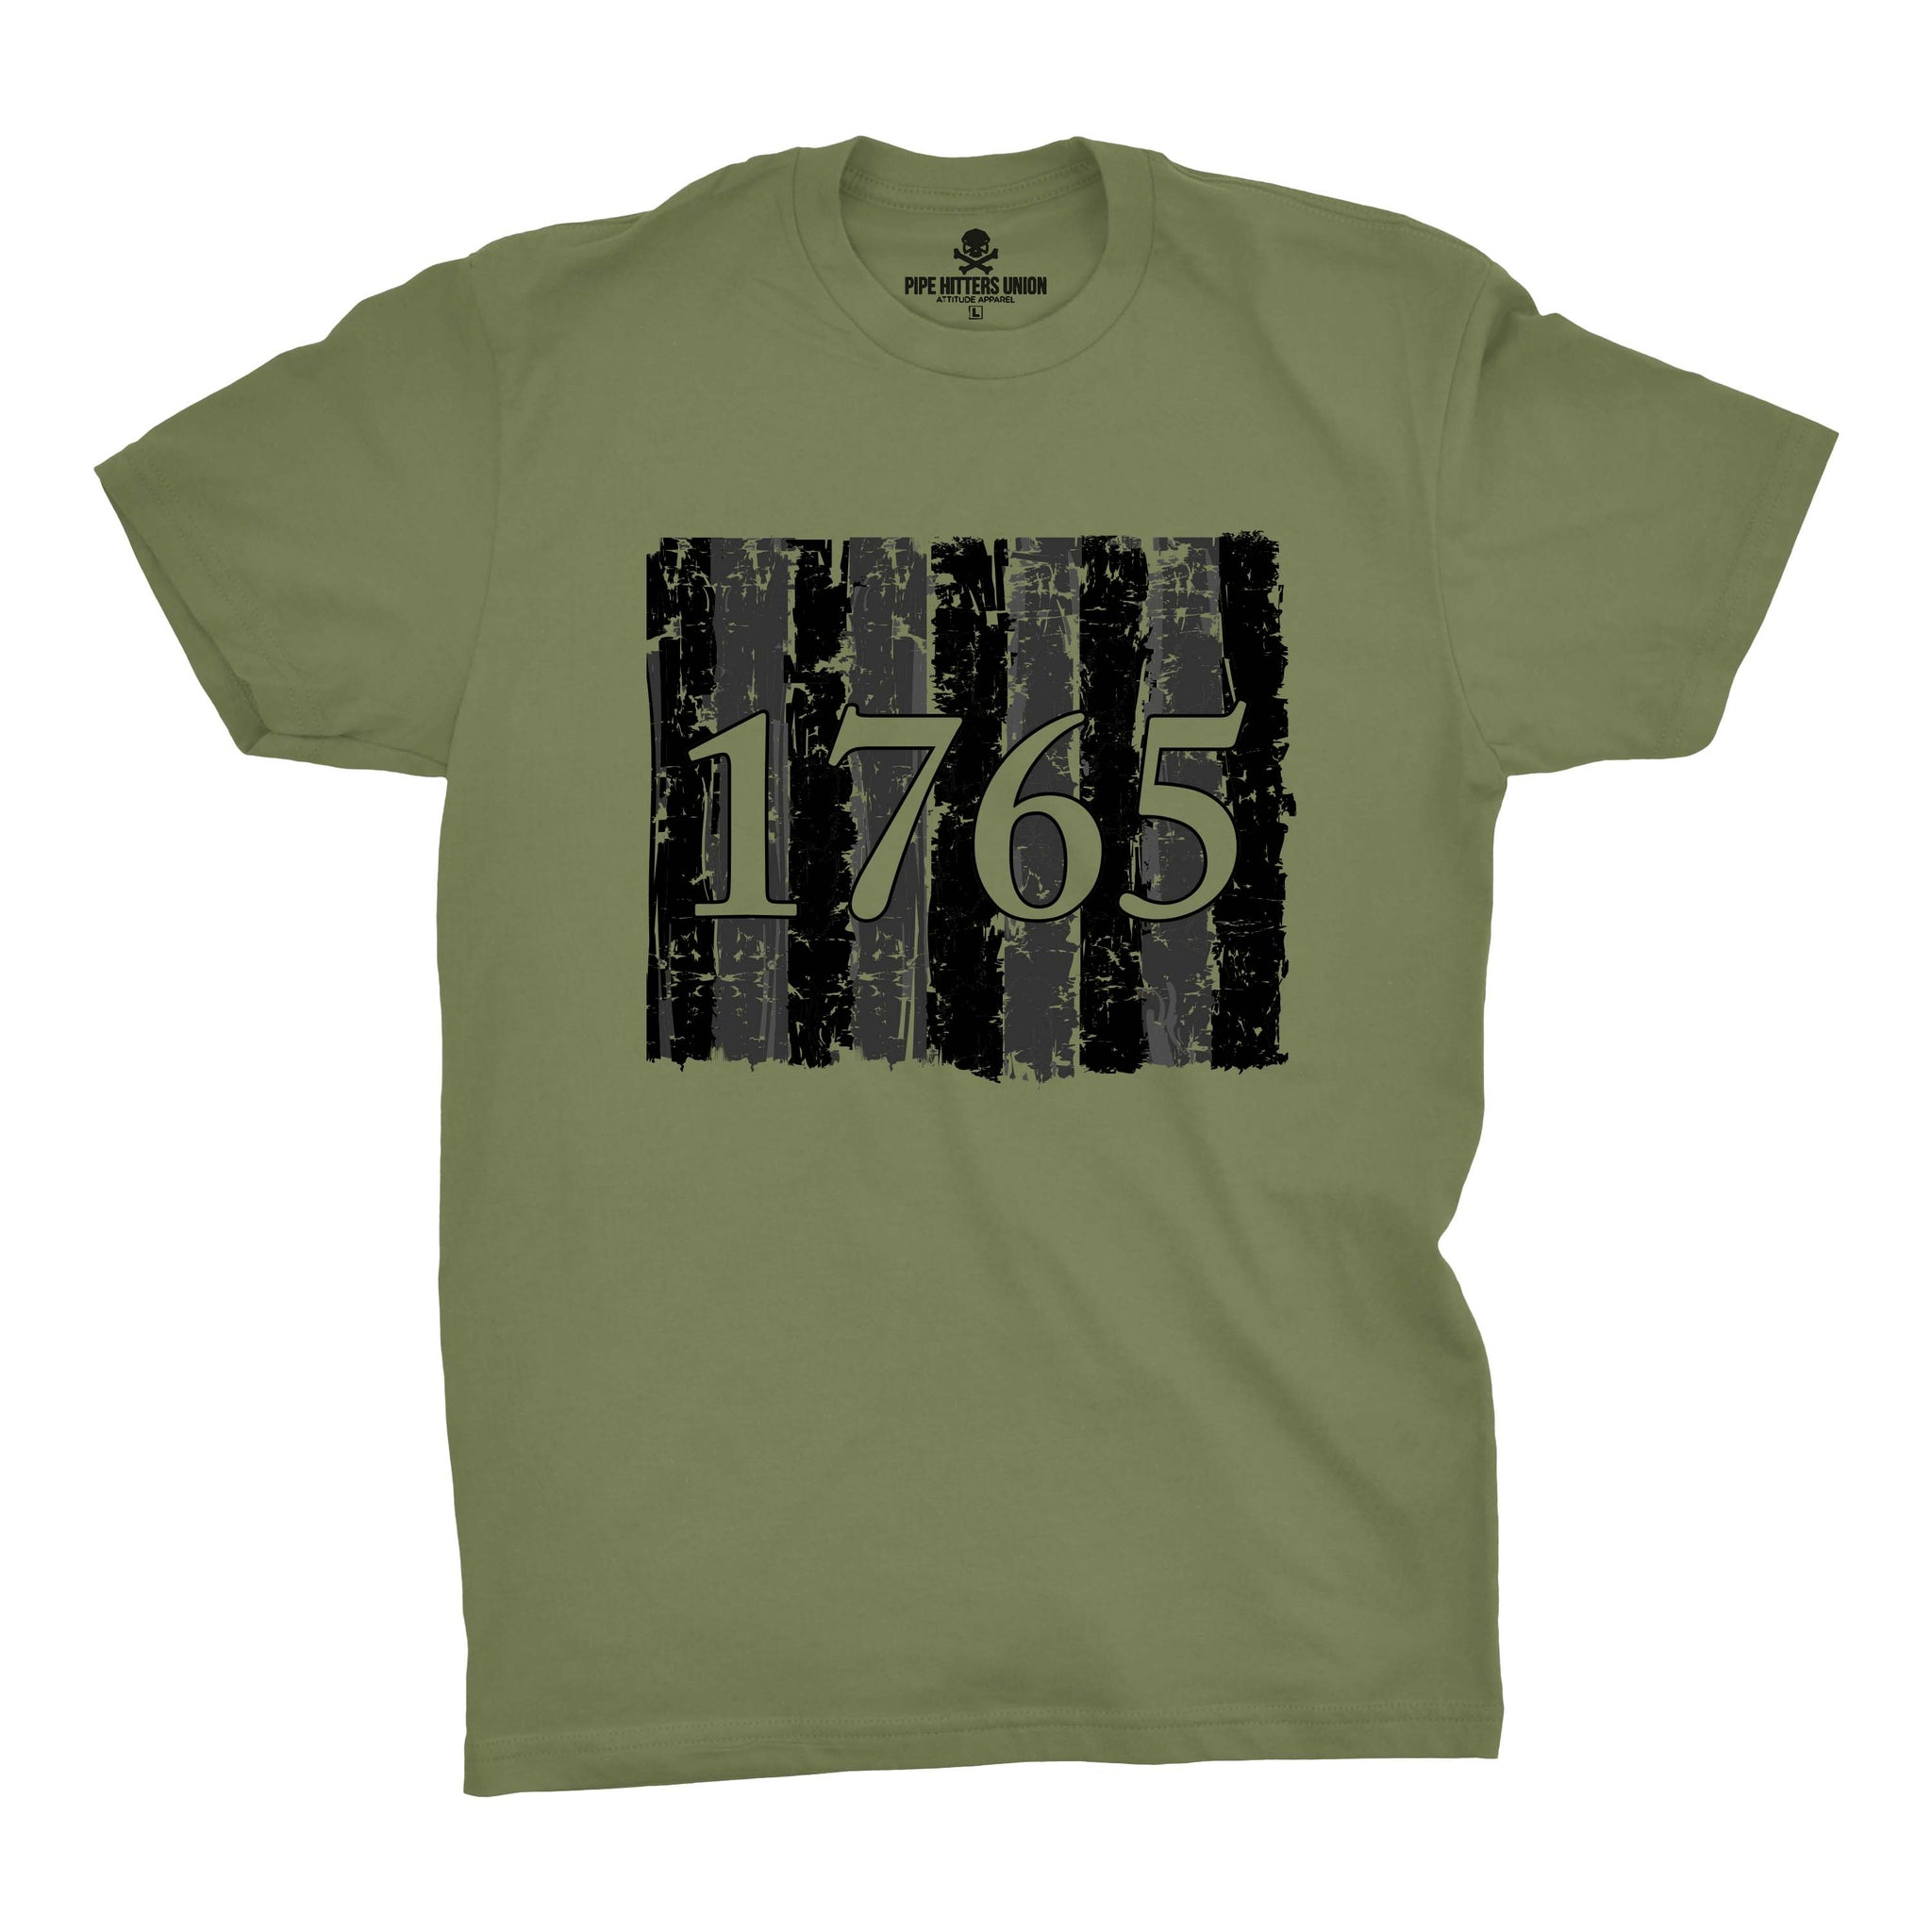 Sons of Liberty - 1765 - Military Green - T-Shirts - Pipe Hitters Union